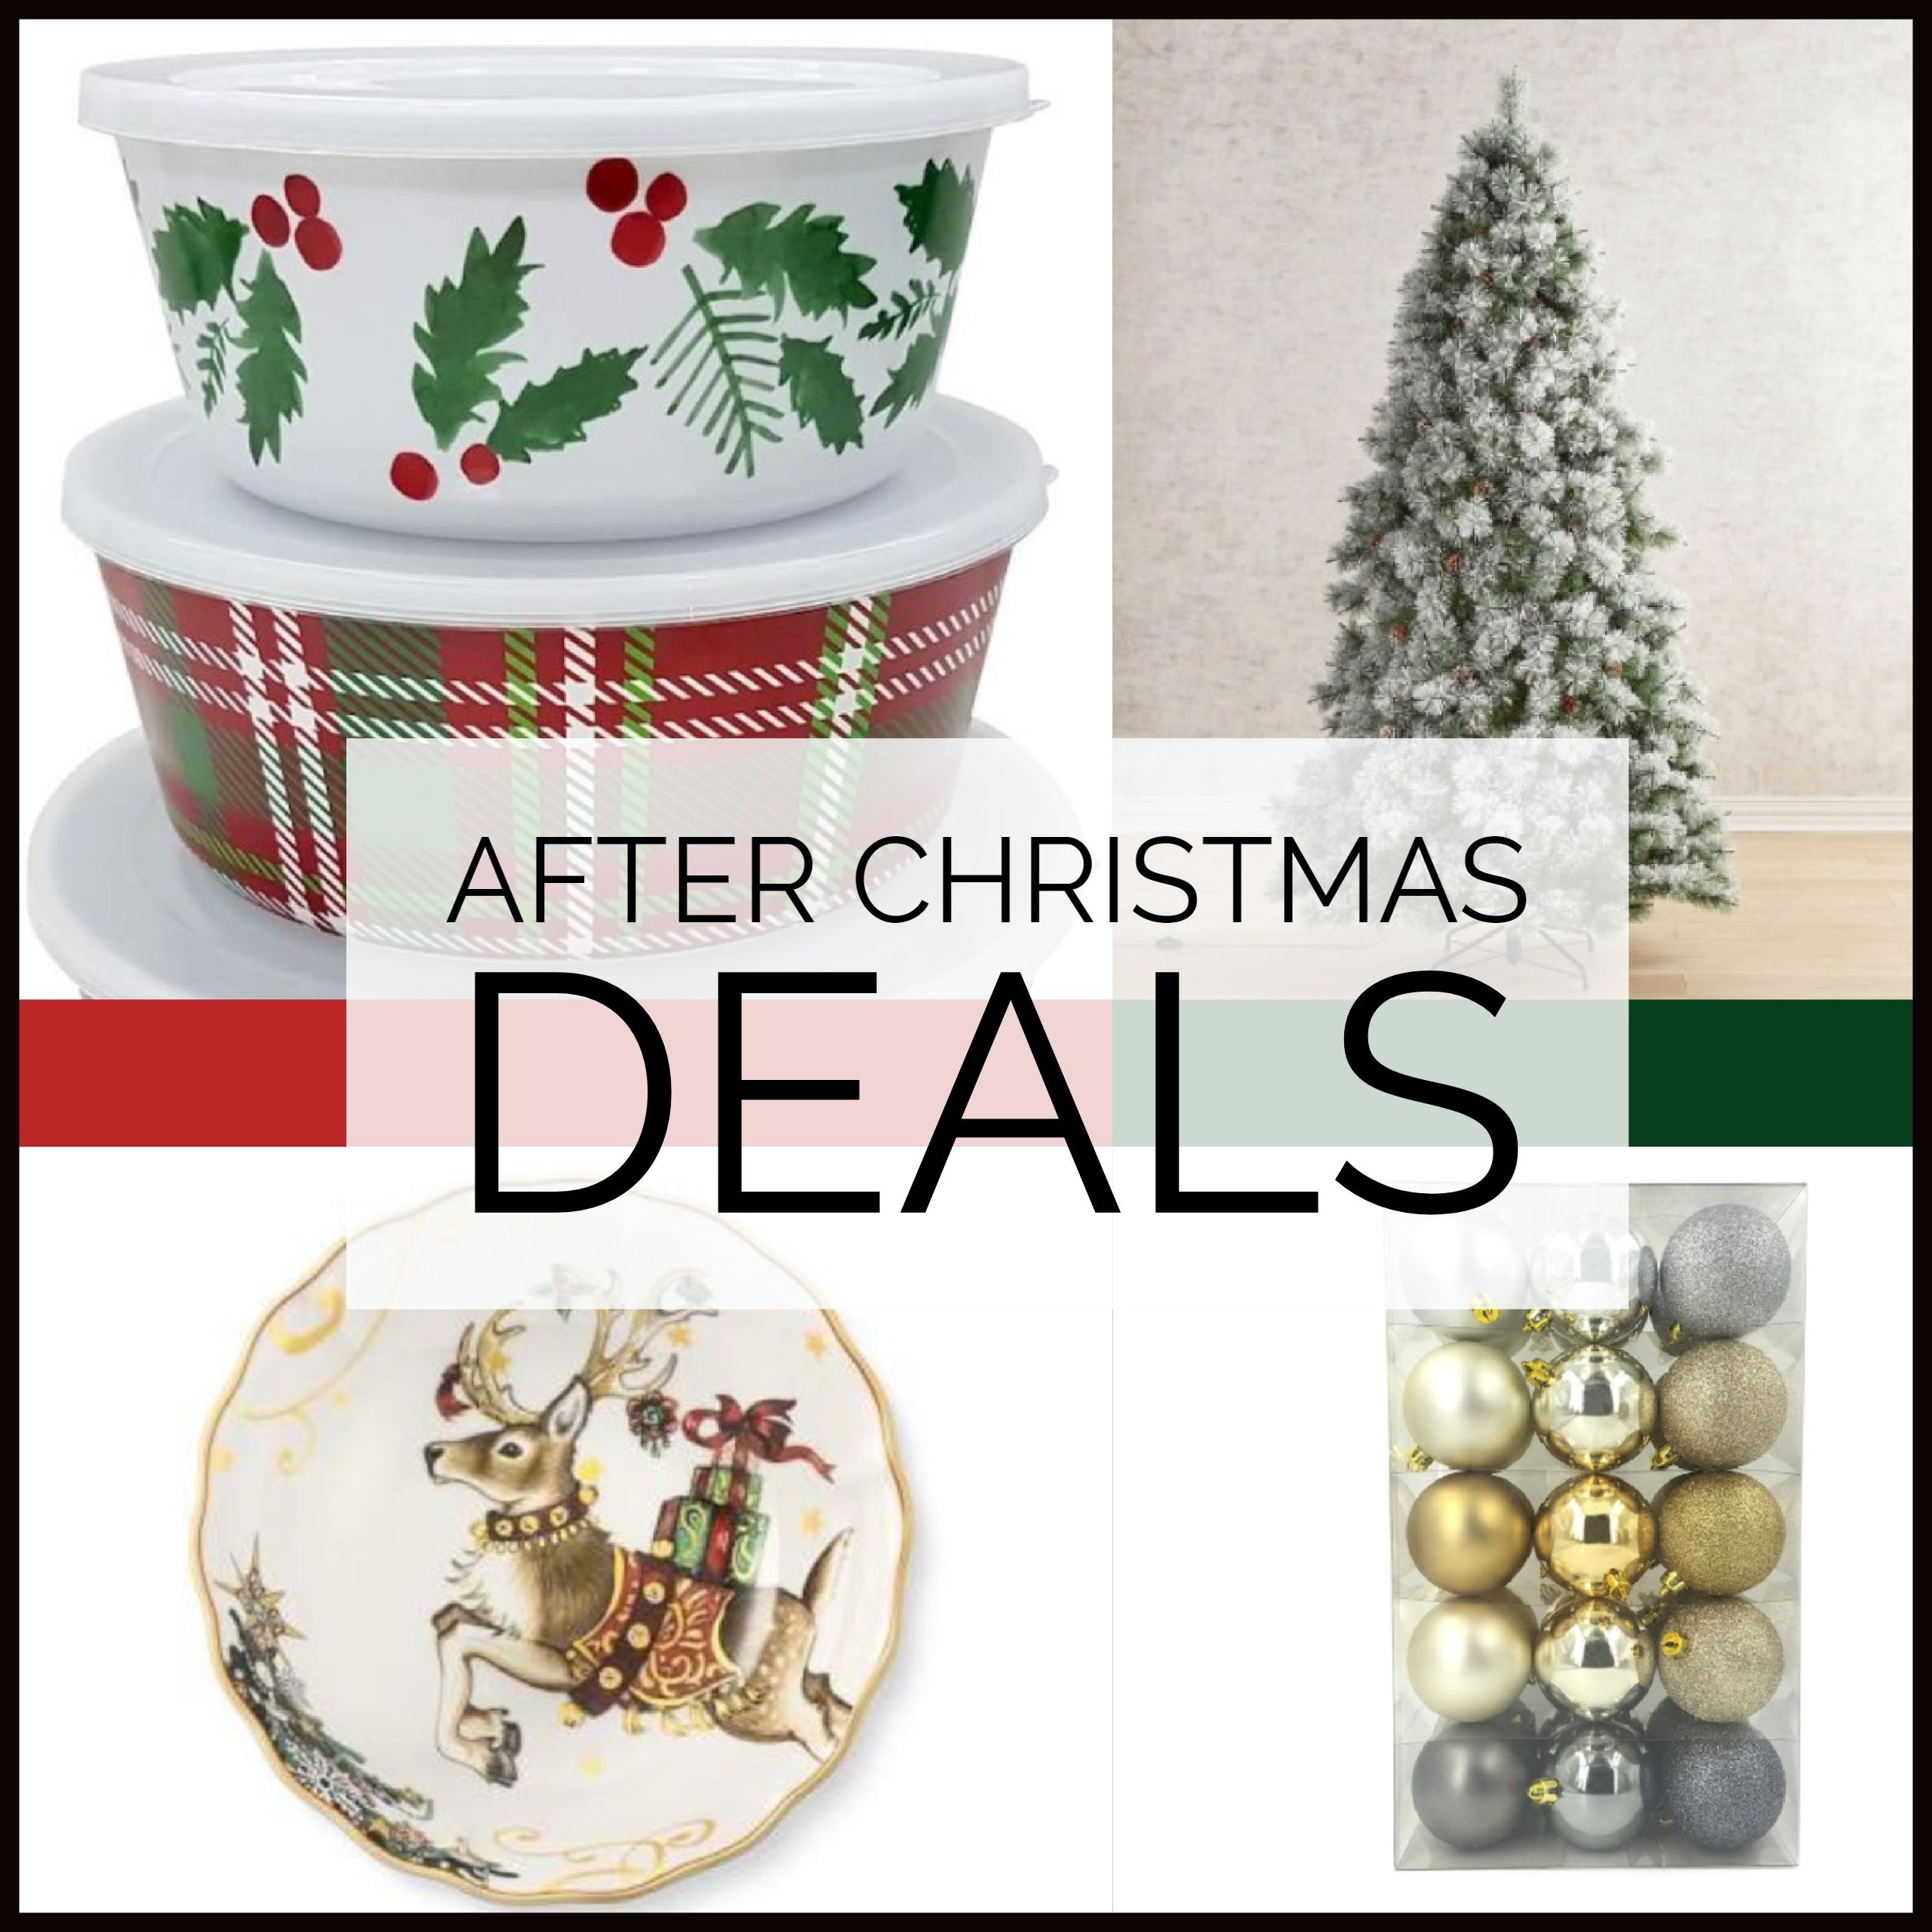 There are still after #Christmas sales going on. Check it out ...